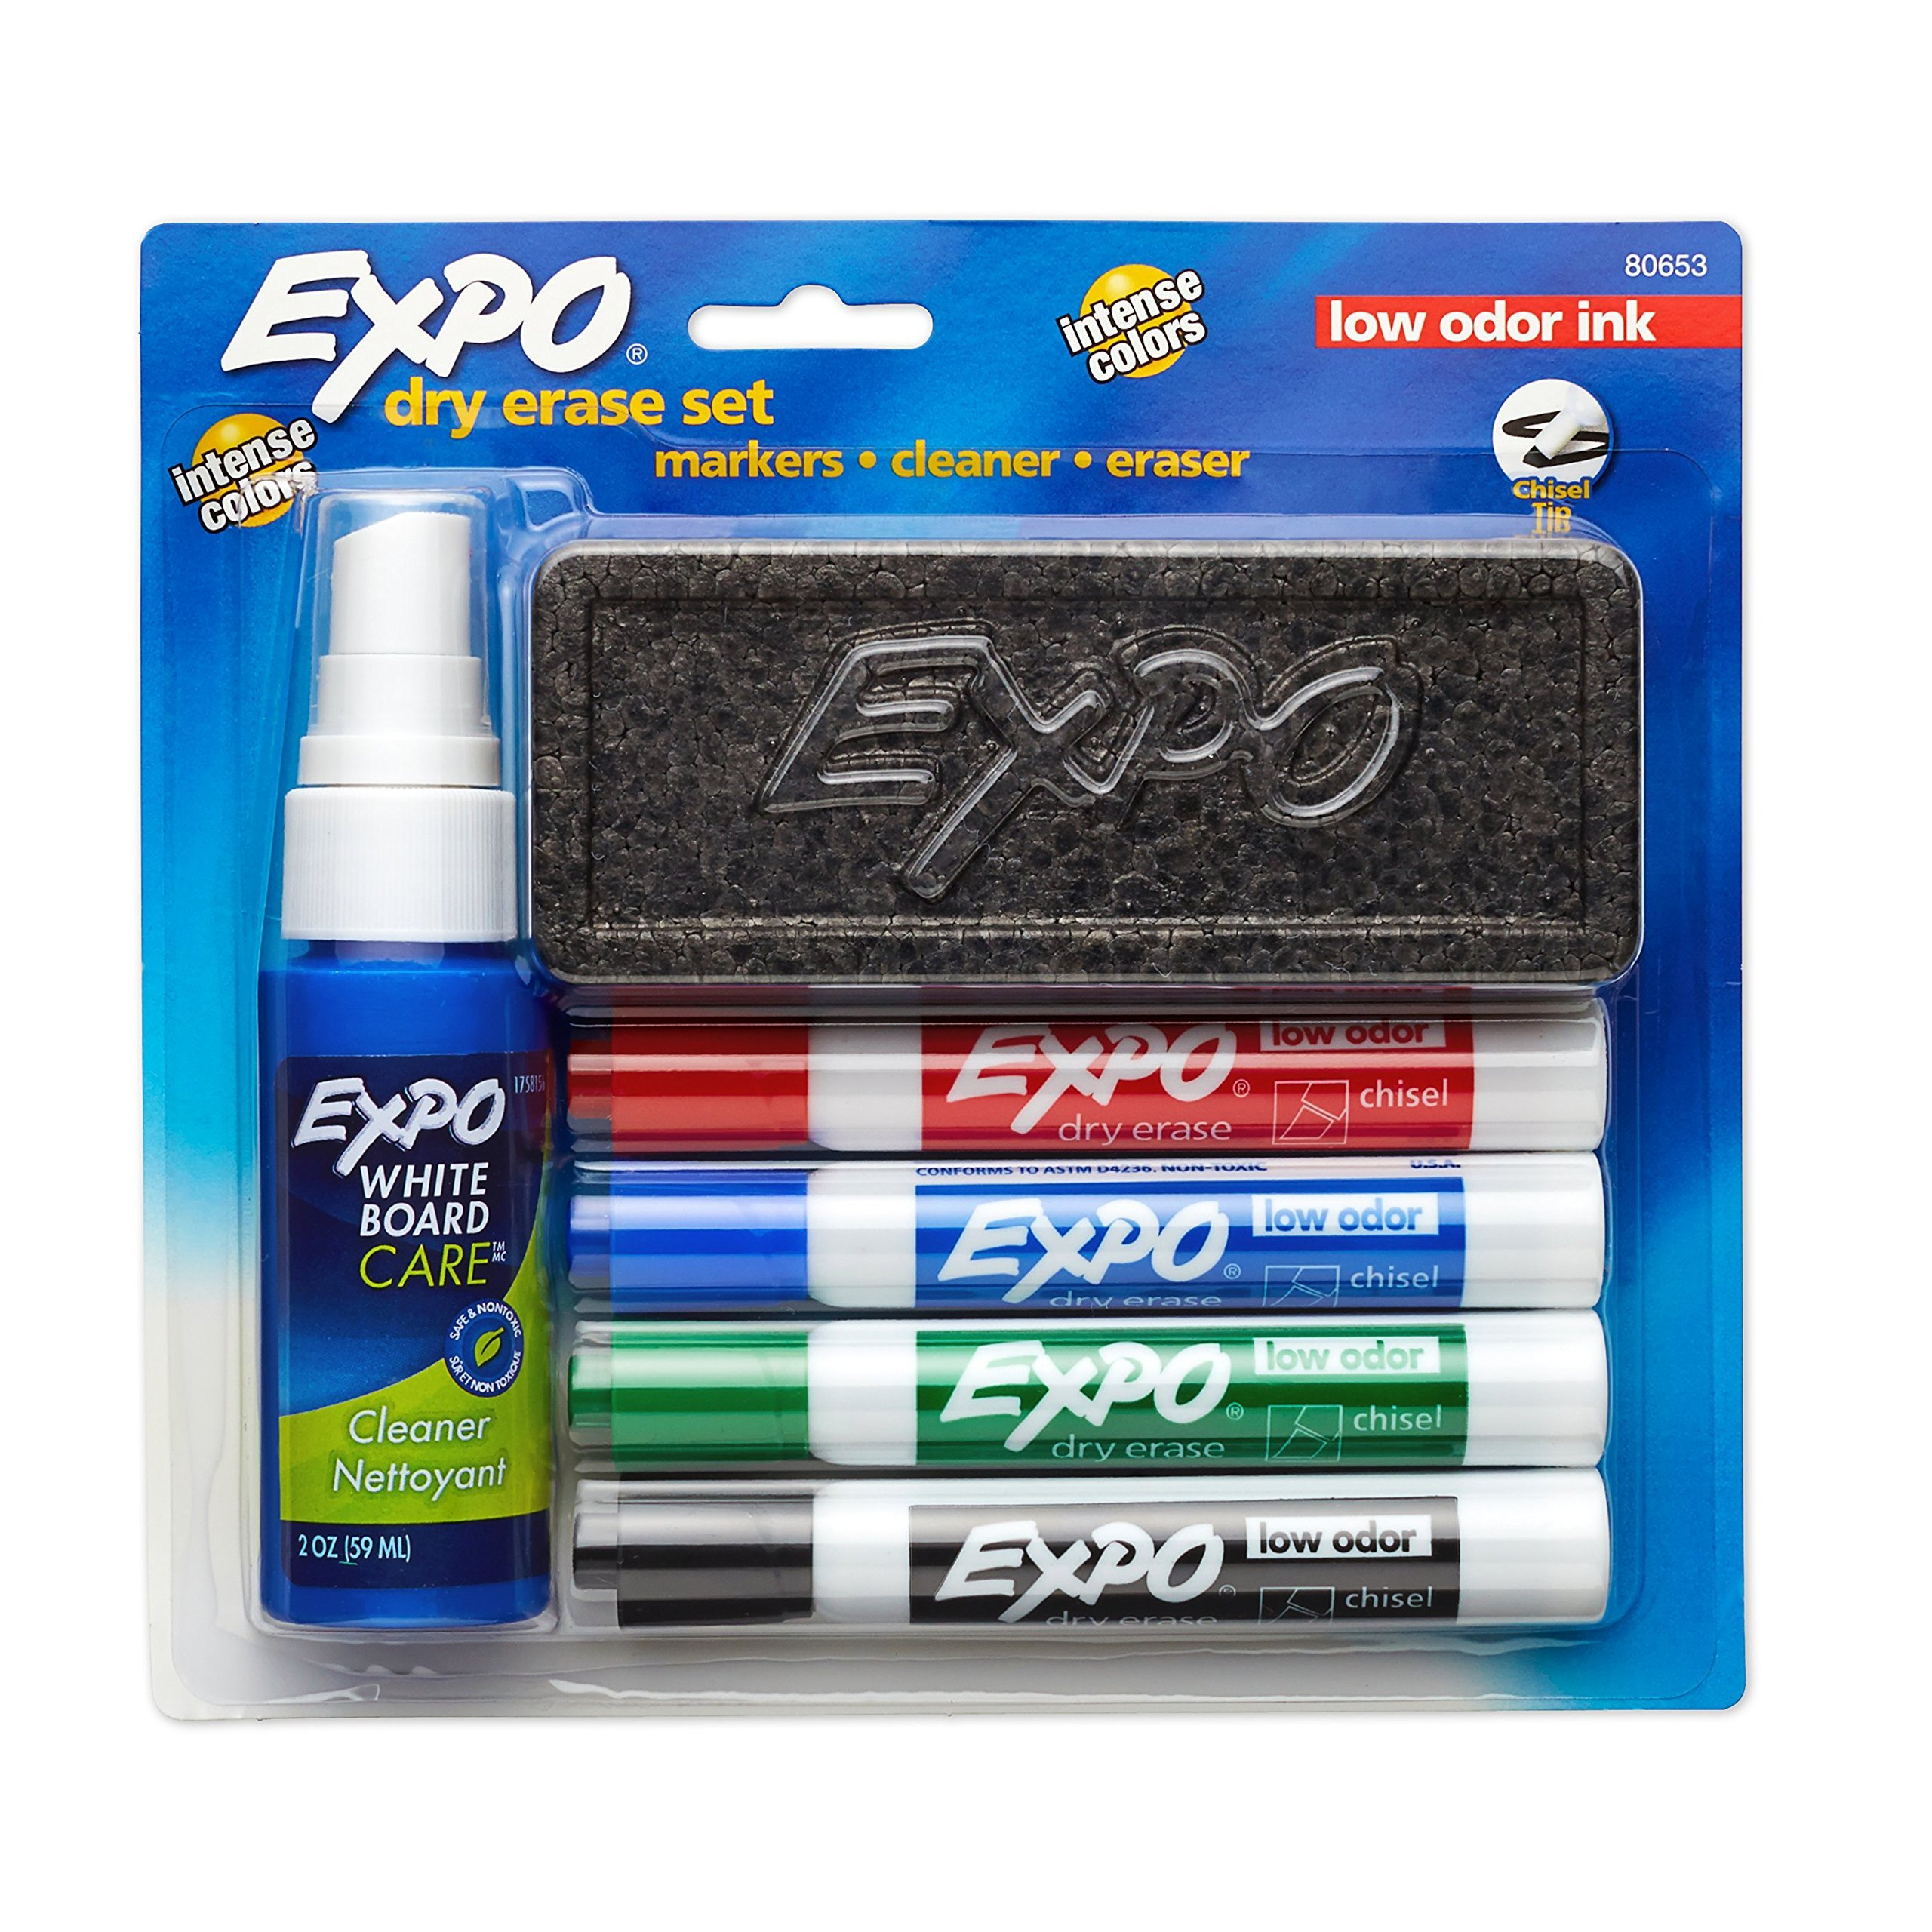 EXPO Dry Erase Marker Starter Set, Chisel Tip, Assorted Colors, 6 Piece by Expo (Image #1)